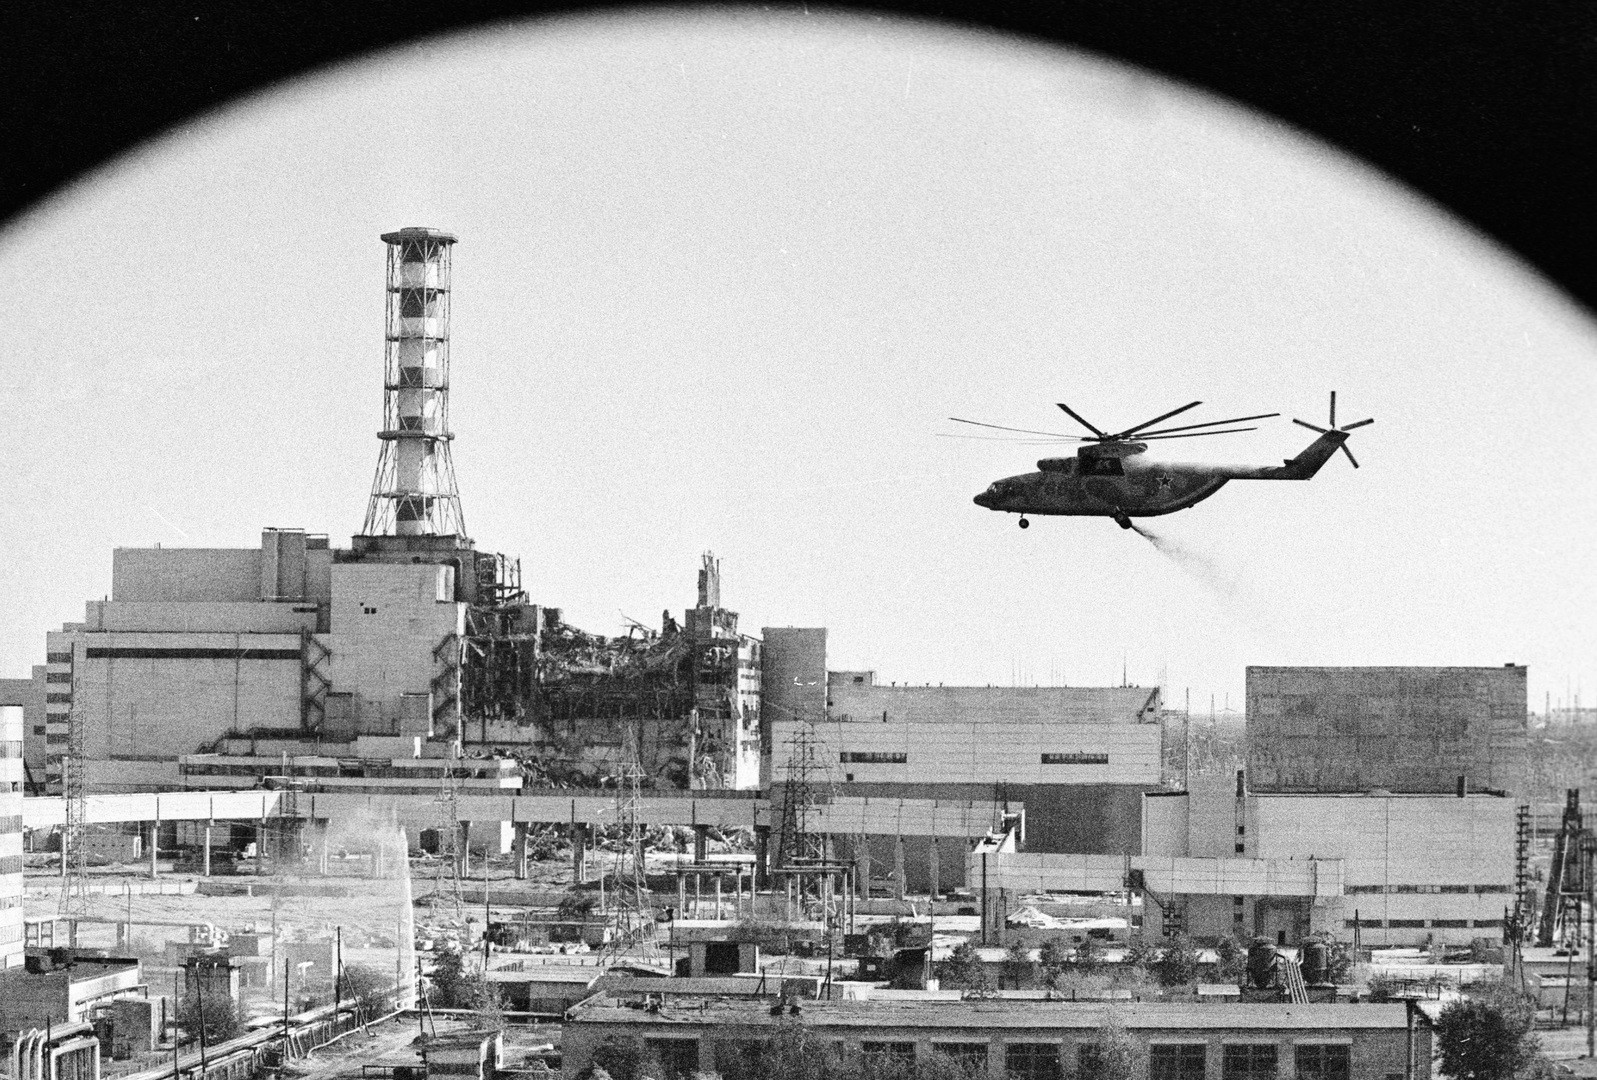 Chernobyl. After the accident